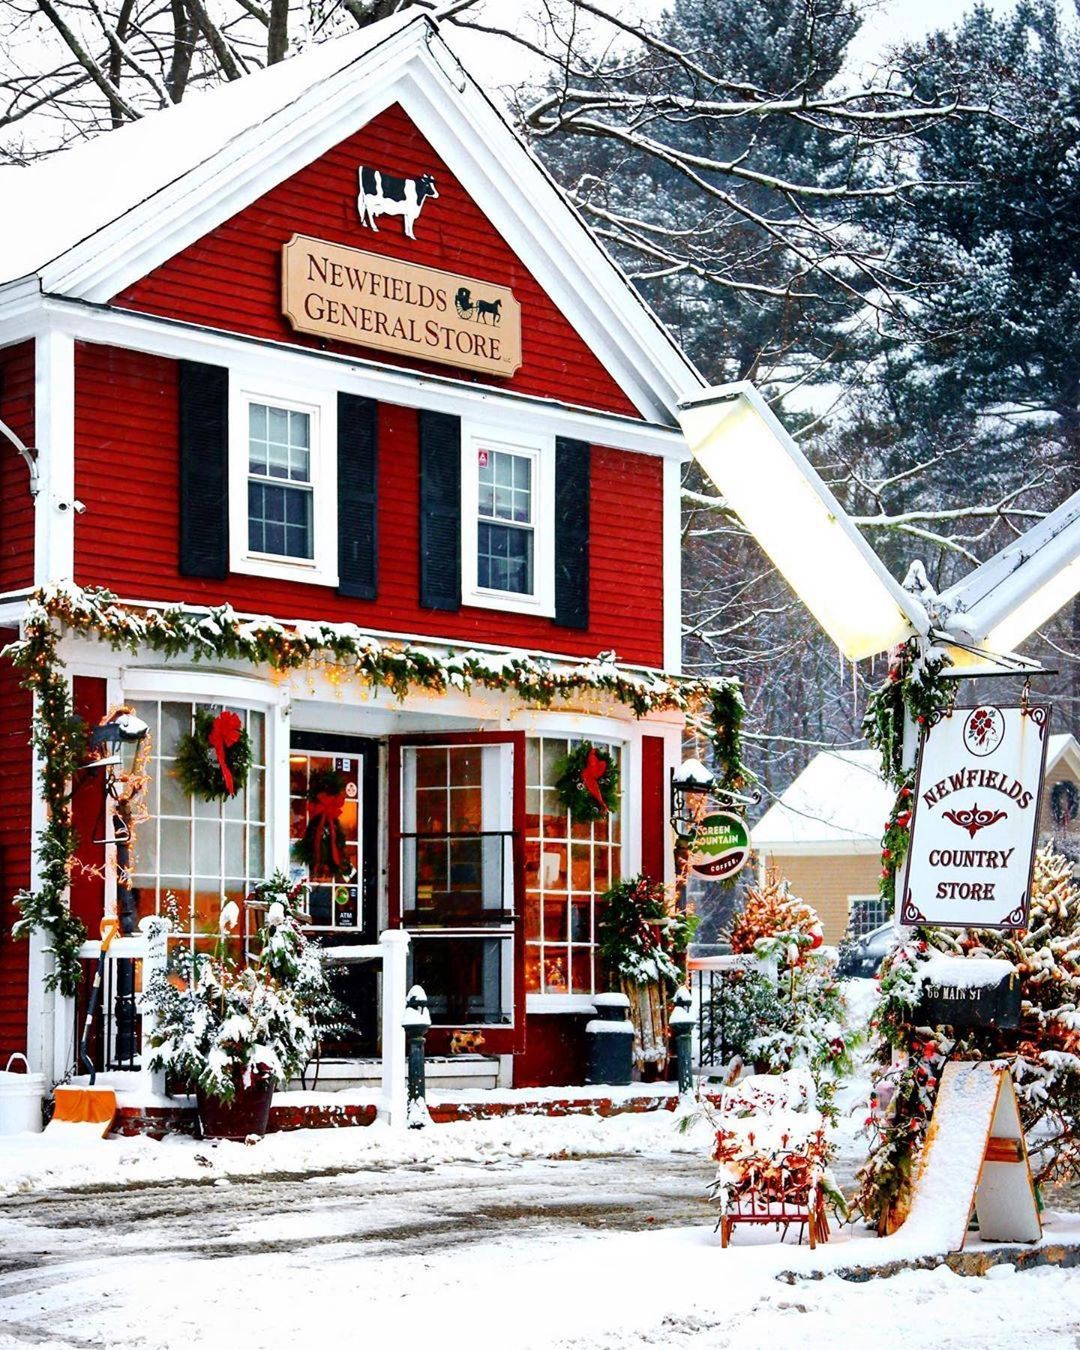 Christmas In New Hampshire 2021 New England Photography On Instagram Merry Christmas Today S Gorgeous Photo Comes From In 2021 Christmas In England Merry Christmas Eve Christmas Pictures